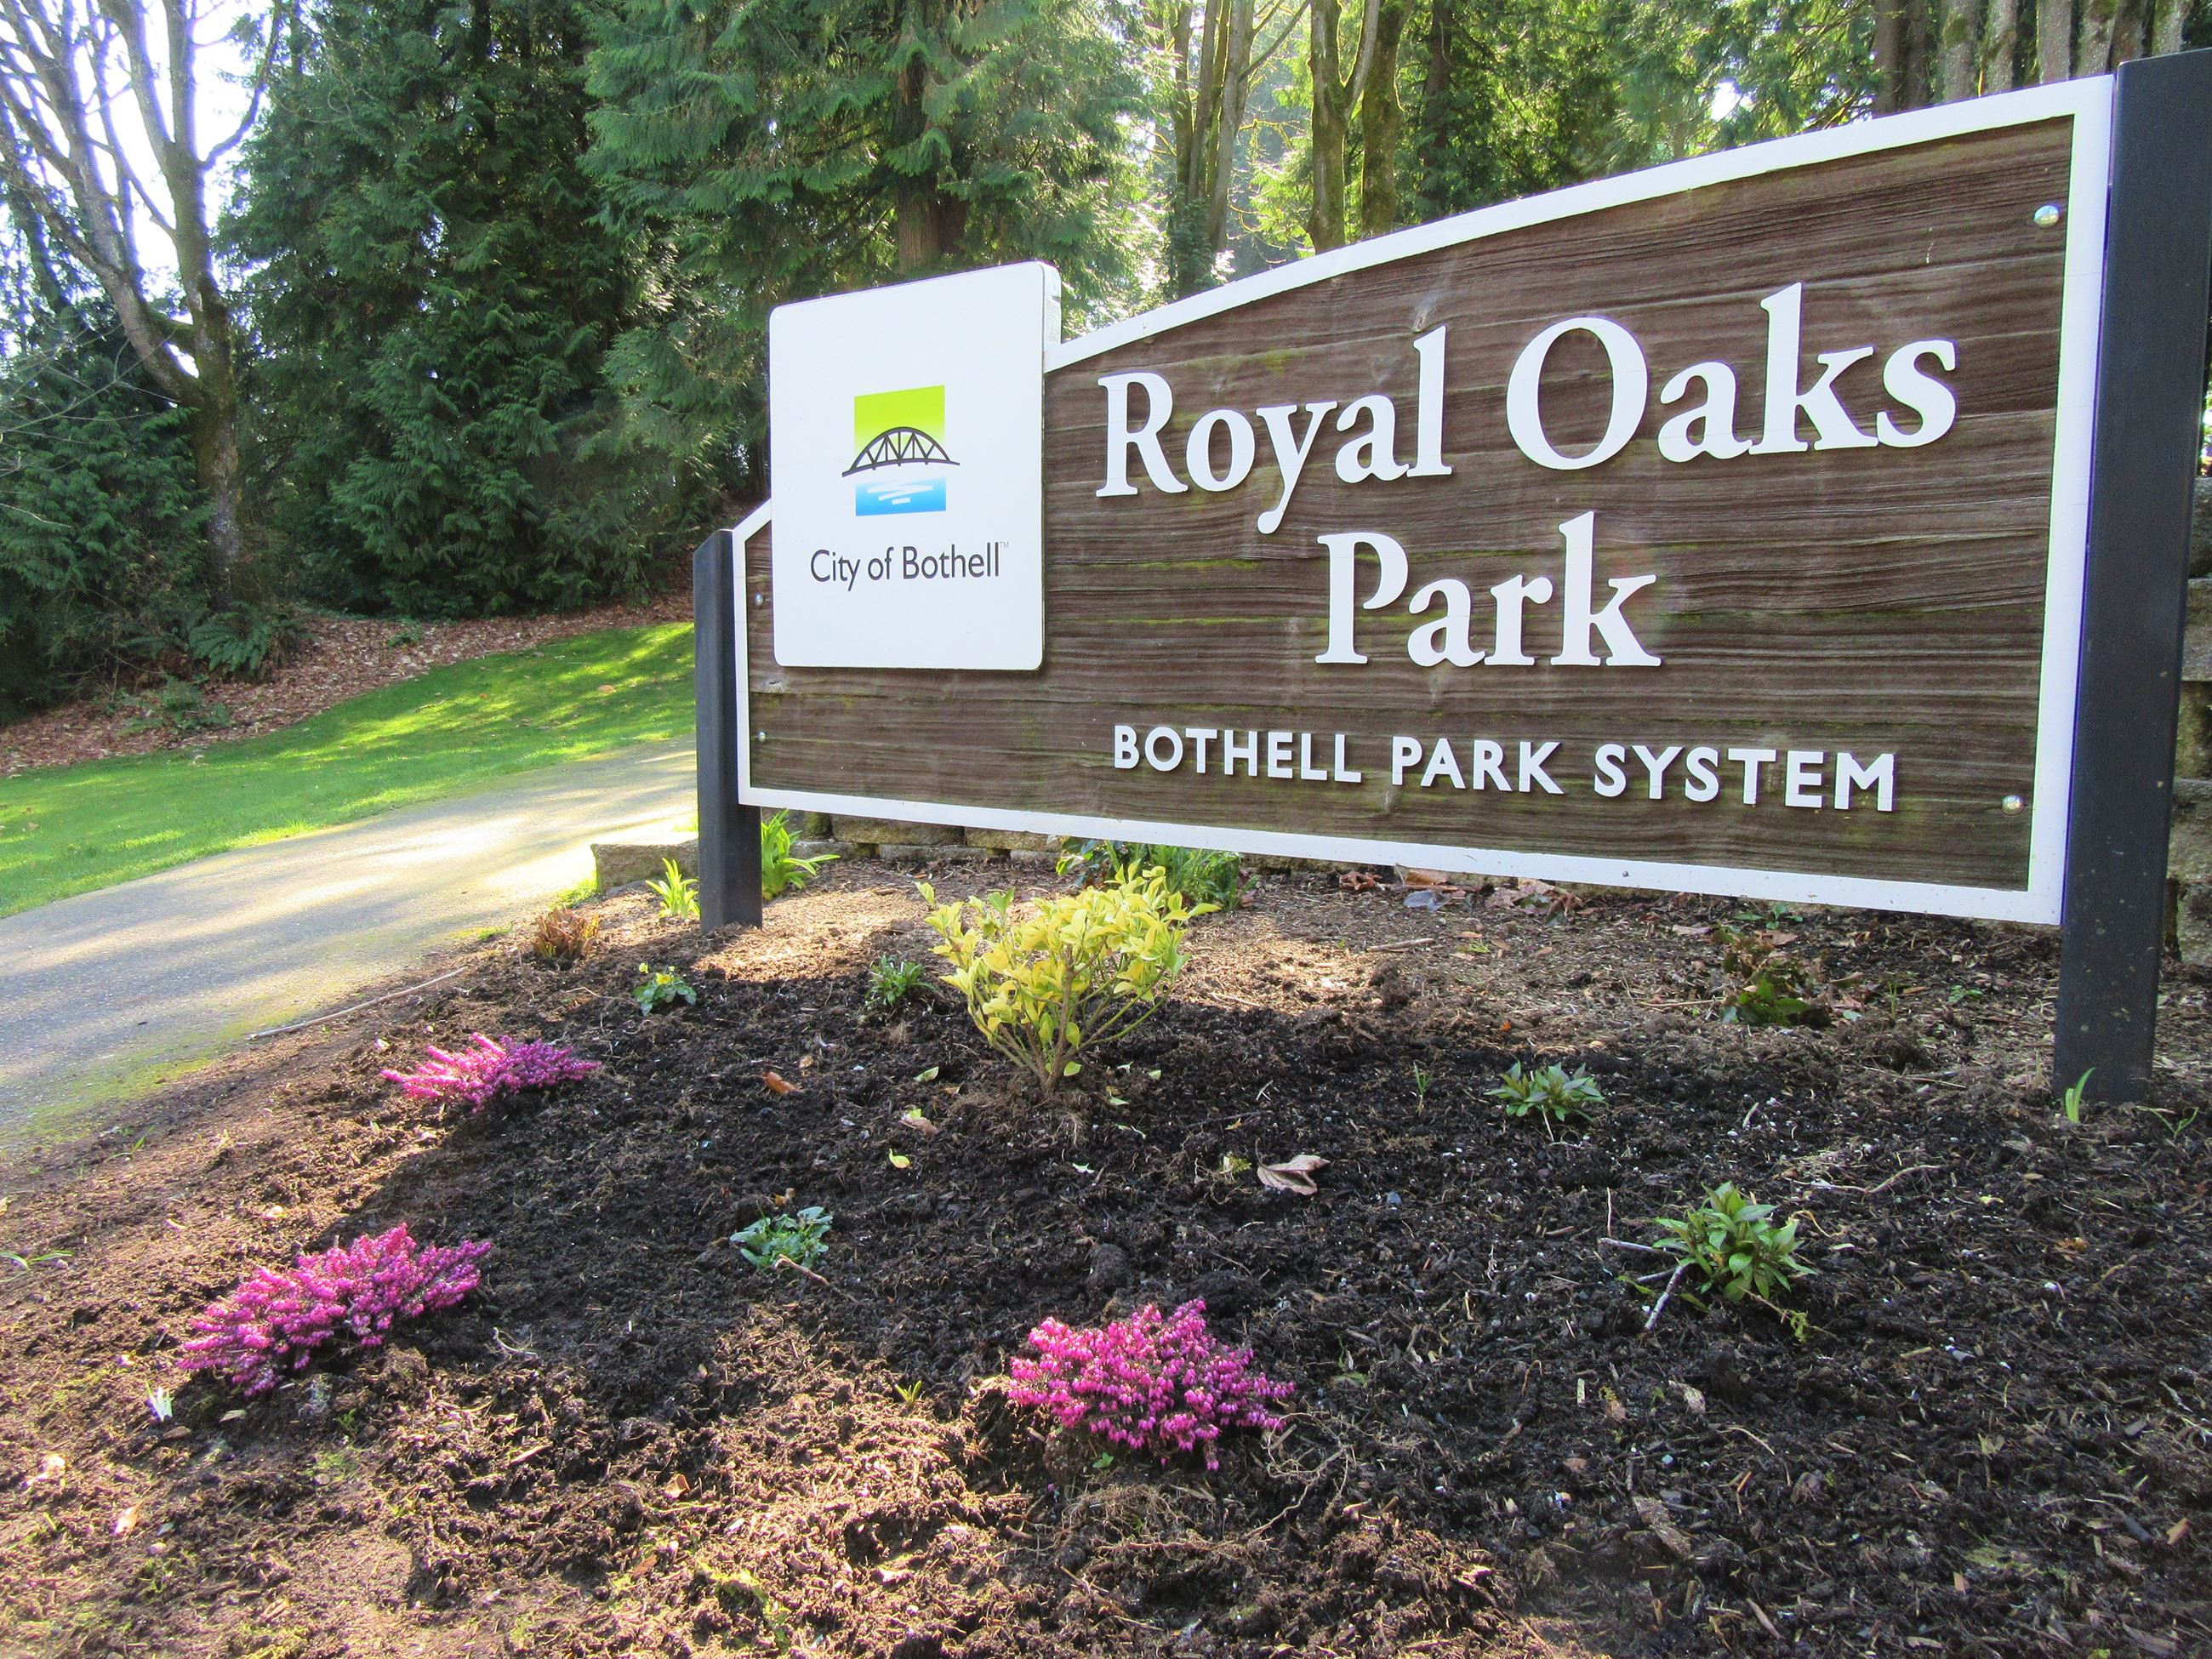 Royal Oaks Park sign